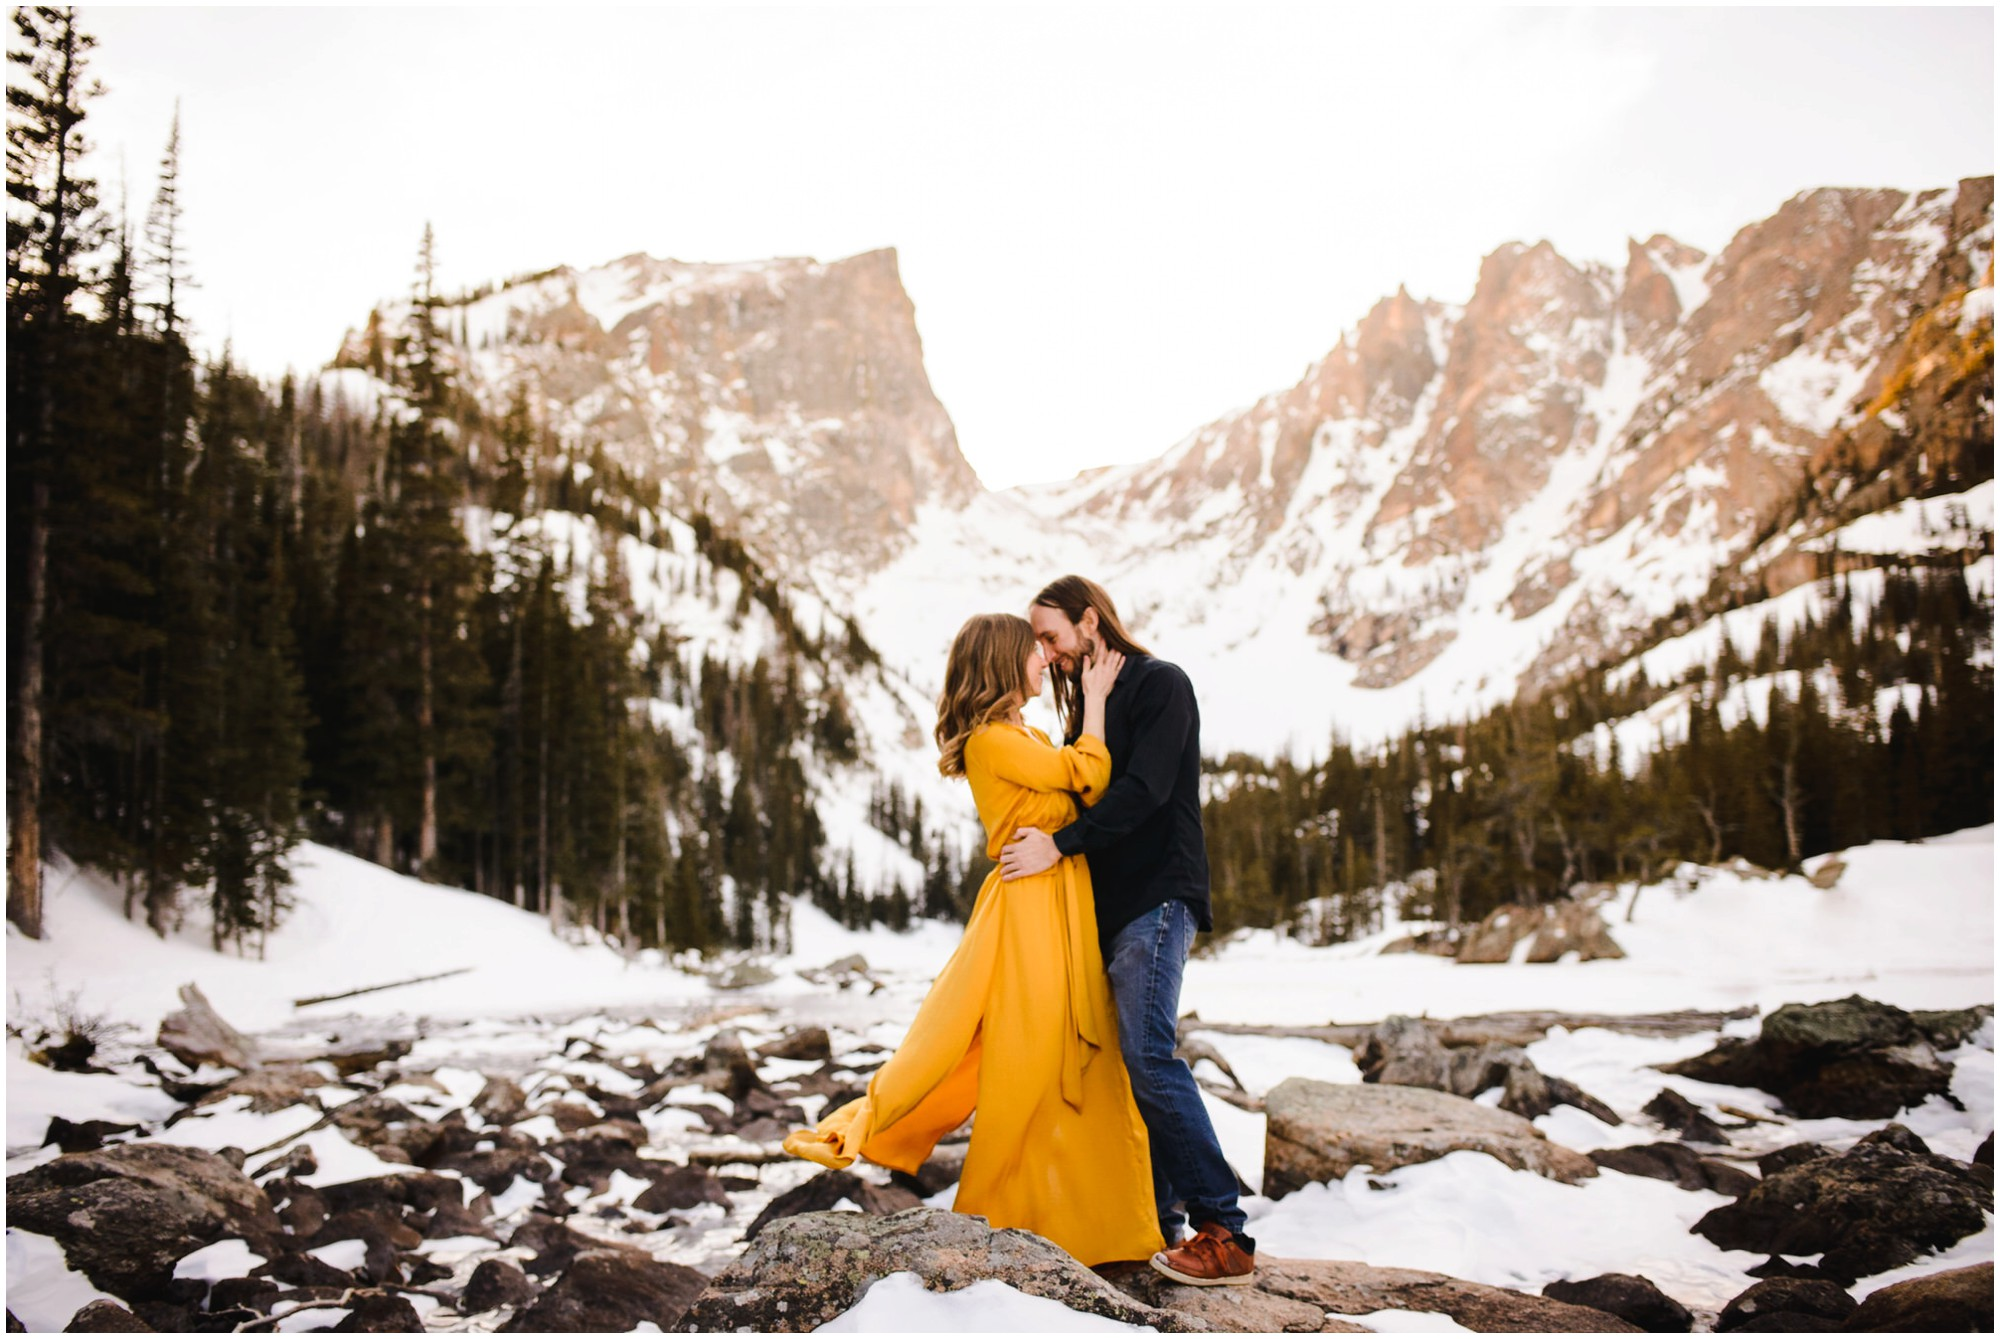 120-Dream-Lake-rocky-mountain-national-Park-engagement.jpg